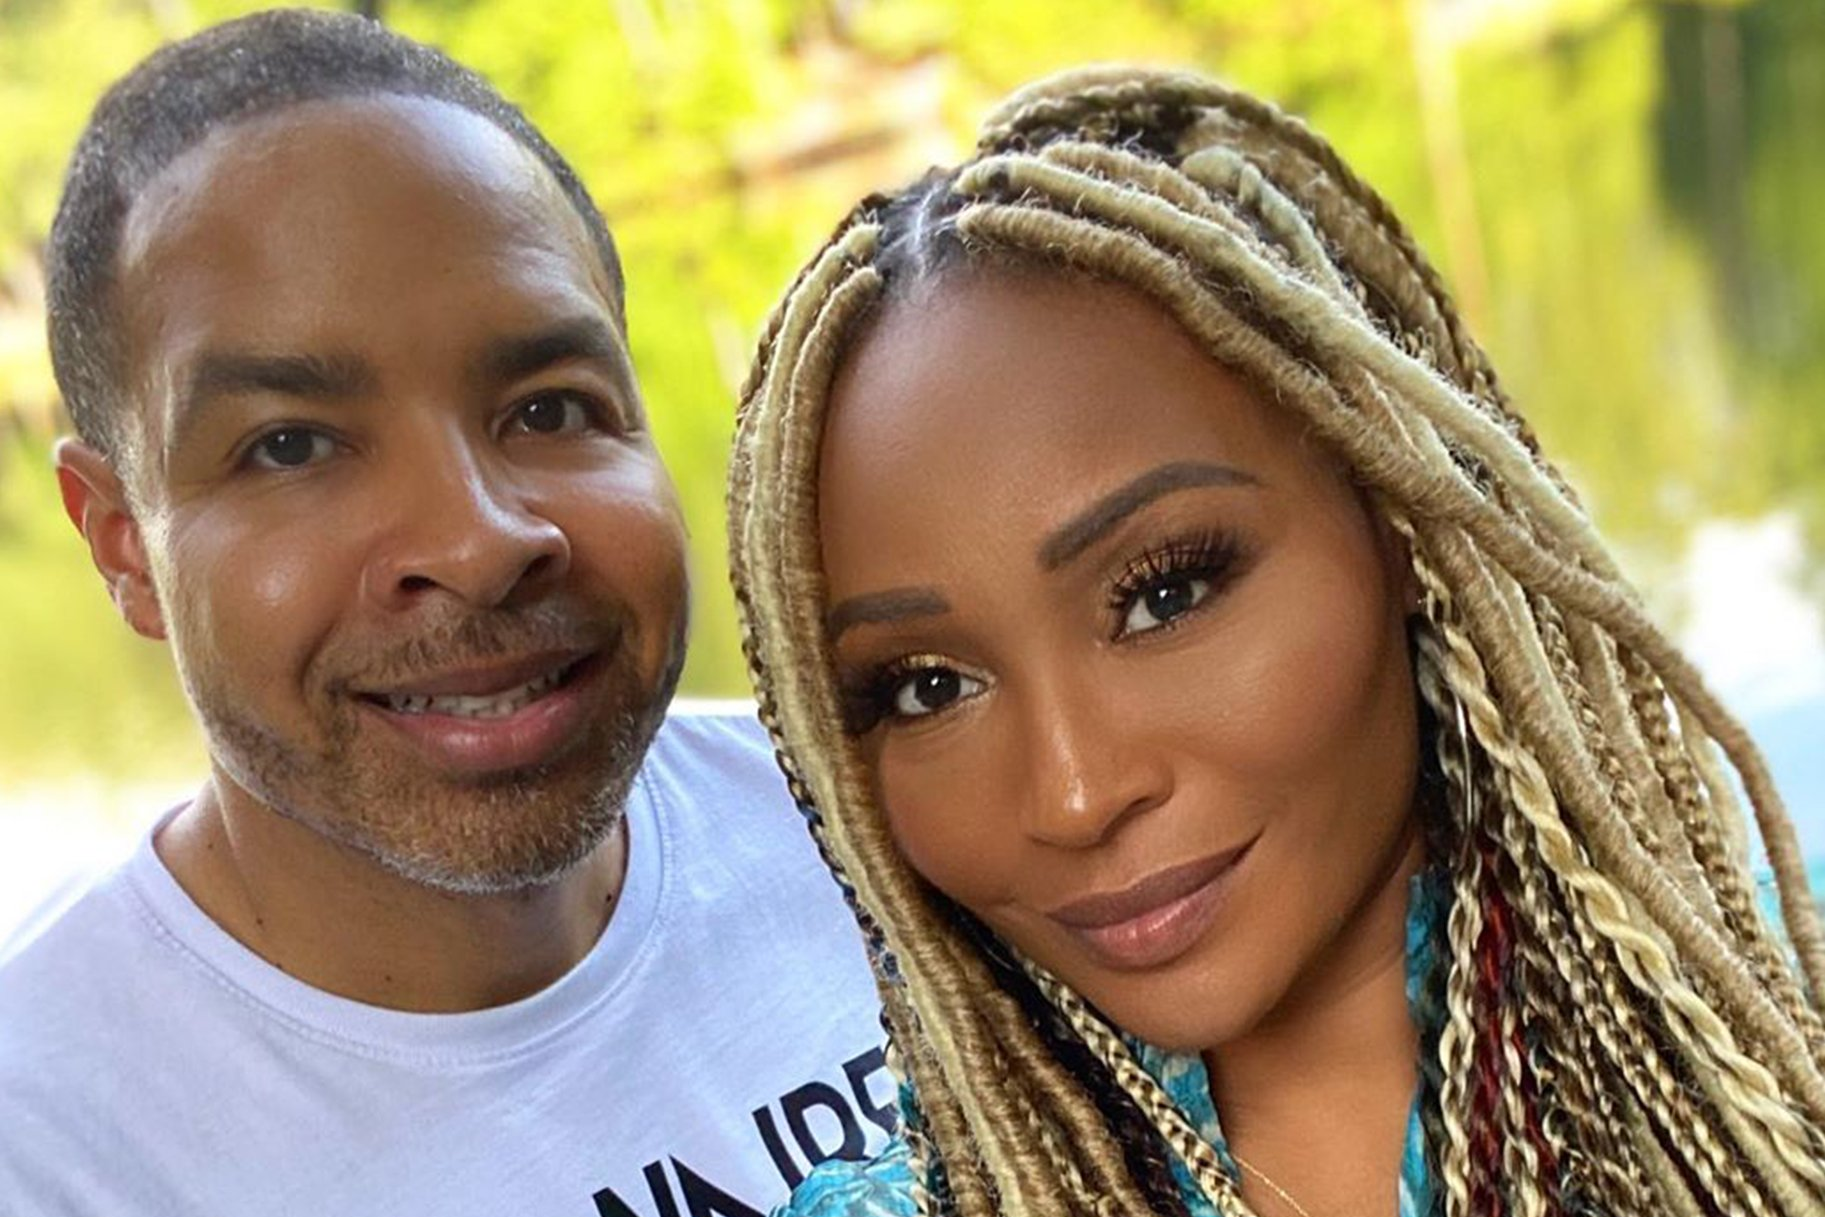 Cynthia Bailey Looks Gorgeous In This White Dress Together With Mike Hill – See The Photos